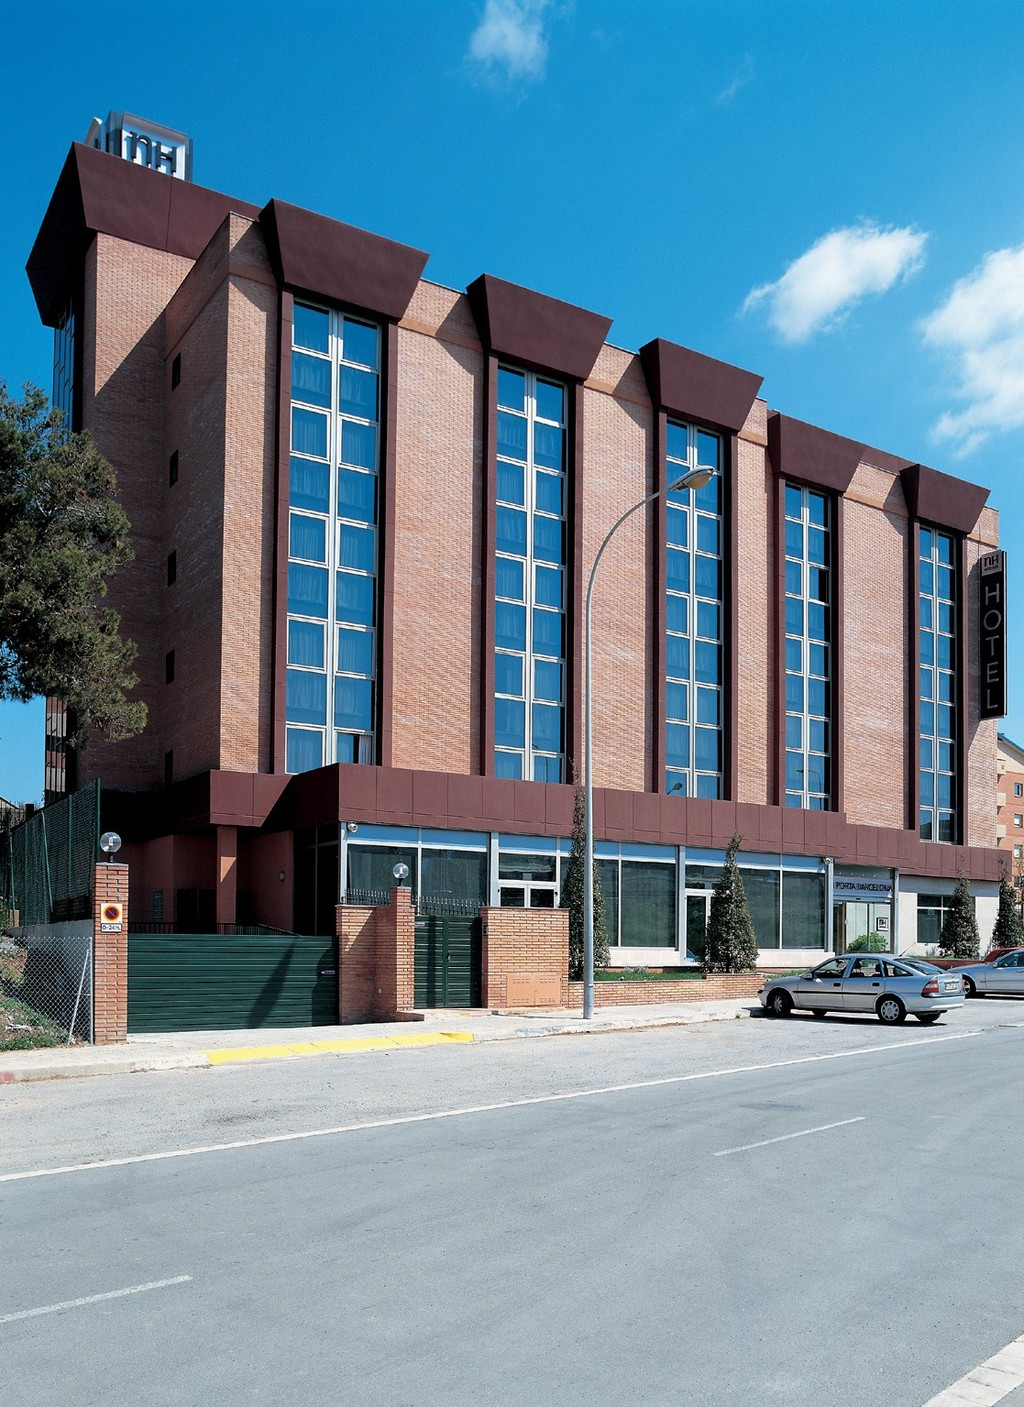 Sant Just Desvern Spain  City pictures : Hotel NH Porta Barcelona, Sant Just Desvern, Spain | HotelSearch.com